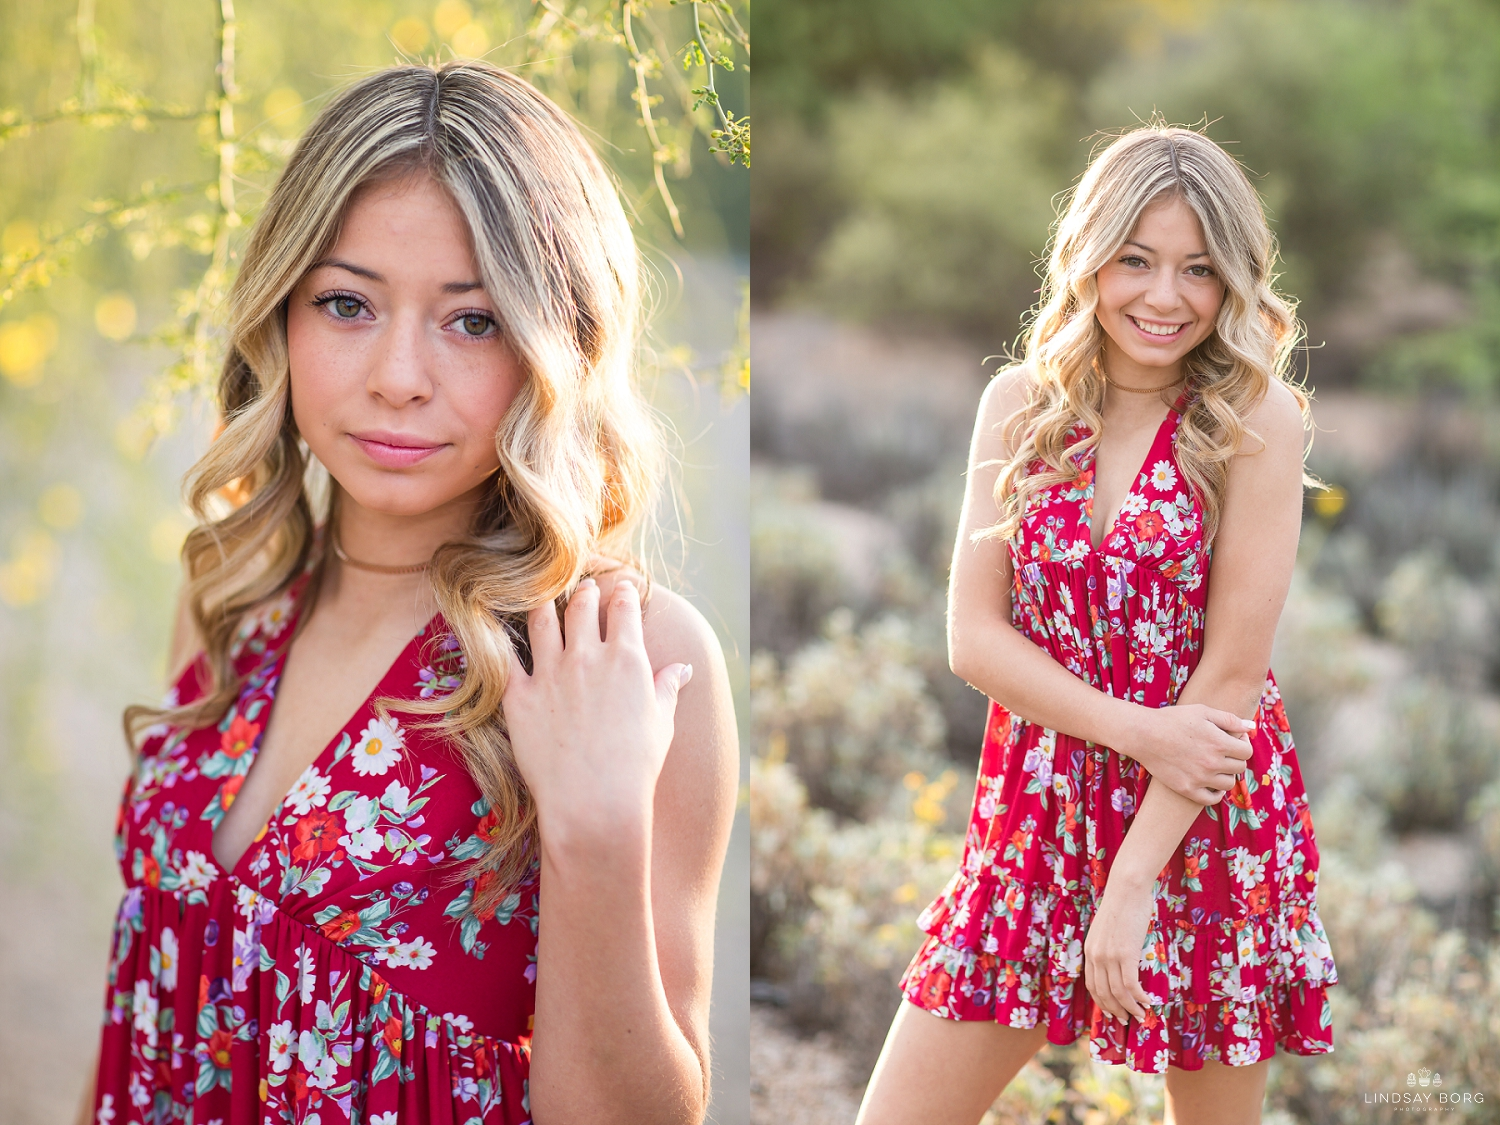 Lindsay-Borg-Photography-arizona-senior-wedding-portrait-photographer-az_2070.jpg